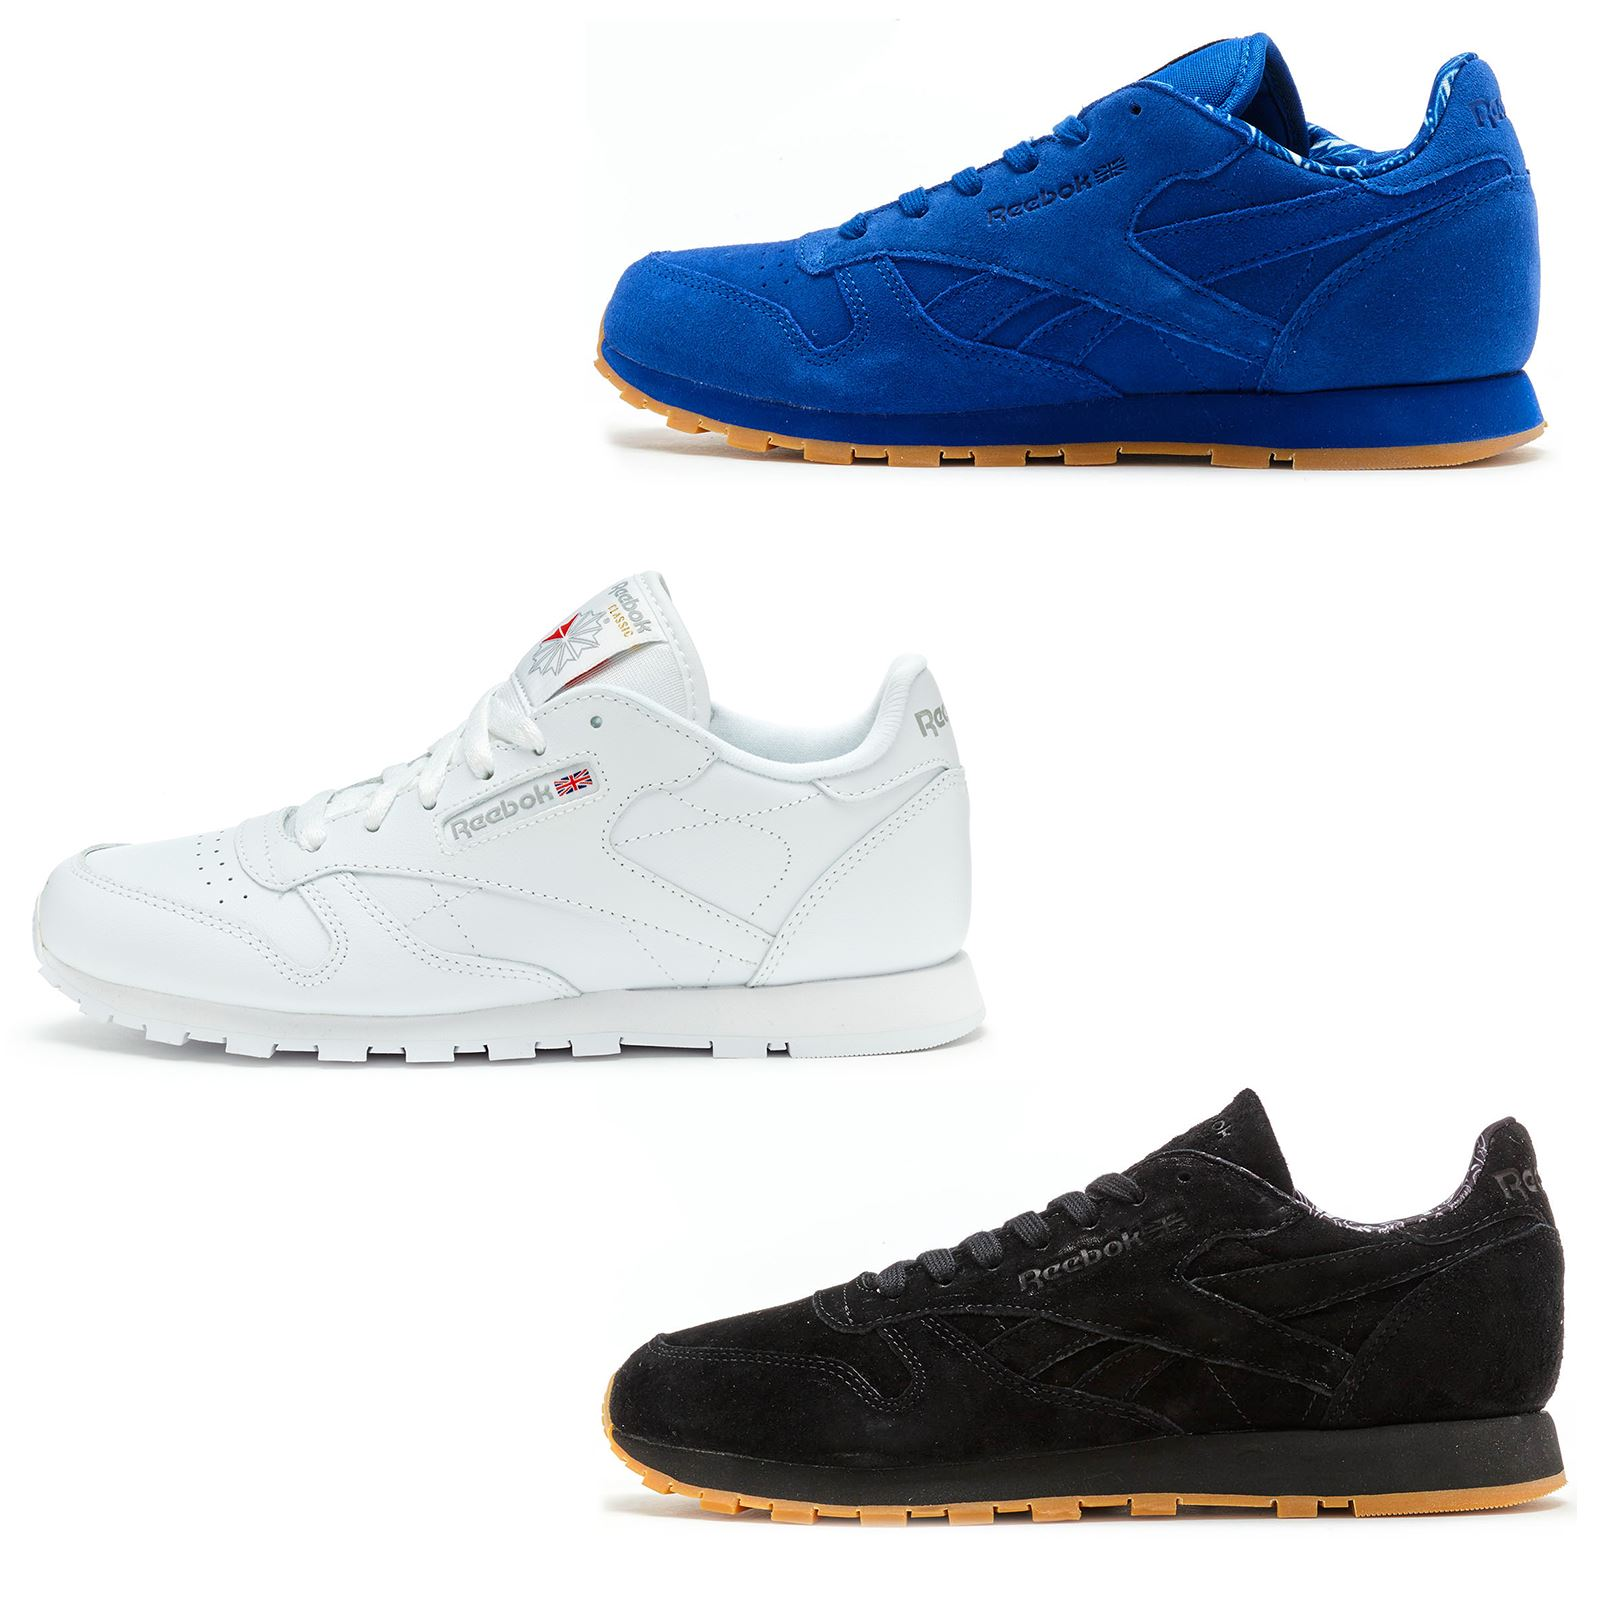 9575f9de55d5fa Reebok Classic Leather   Suede TDC   Primary School GS Trainers in All Sizes